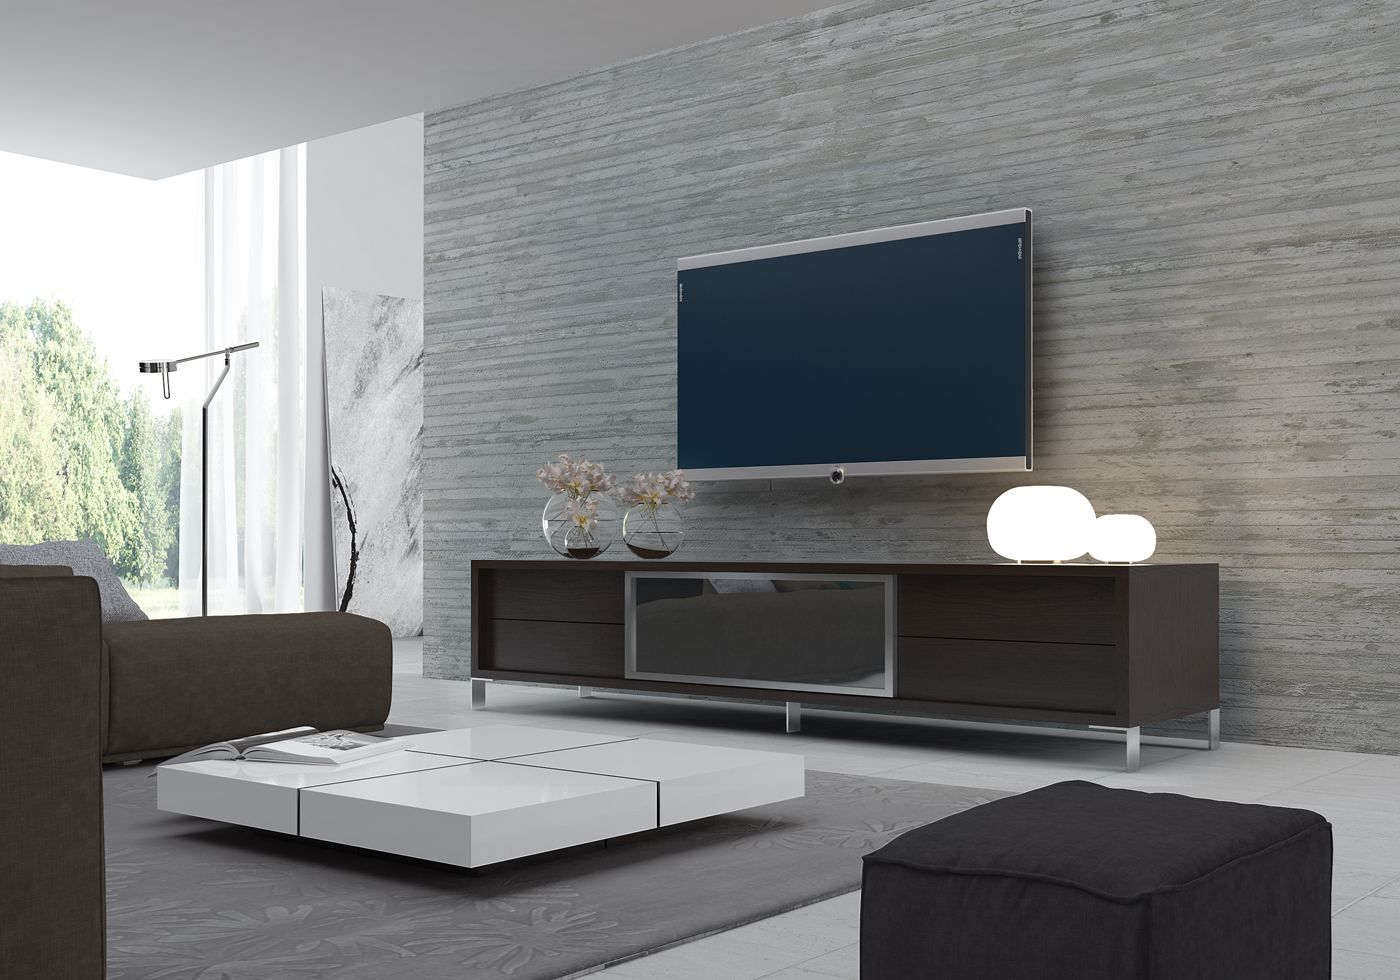 Unusual Tv Consoles How To Prop Up A Without Stand Cheap Ideas In Favorite Unusual Tv Stands (Gallery 7 of 20)